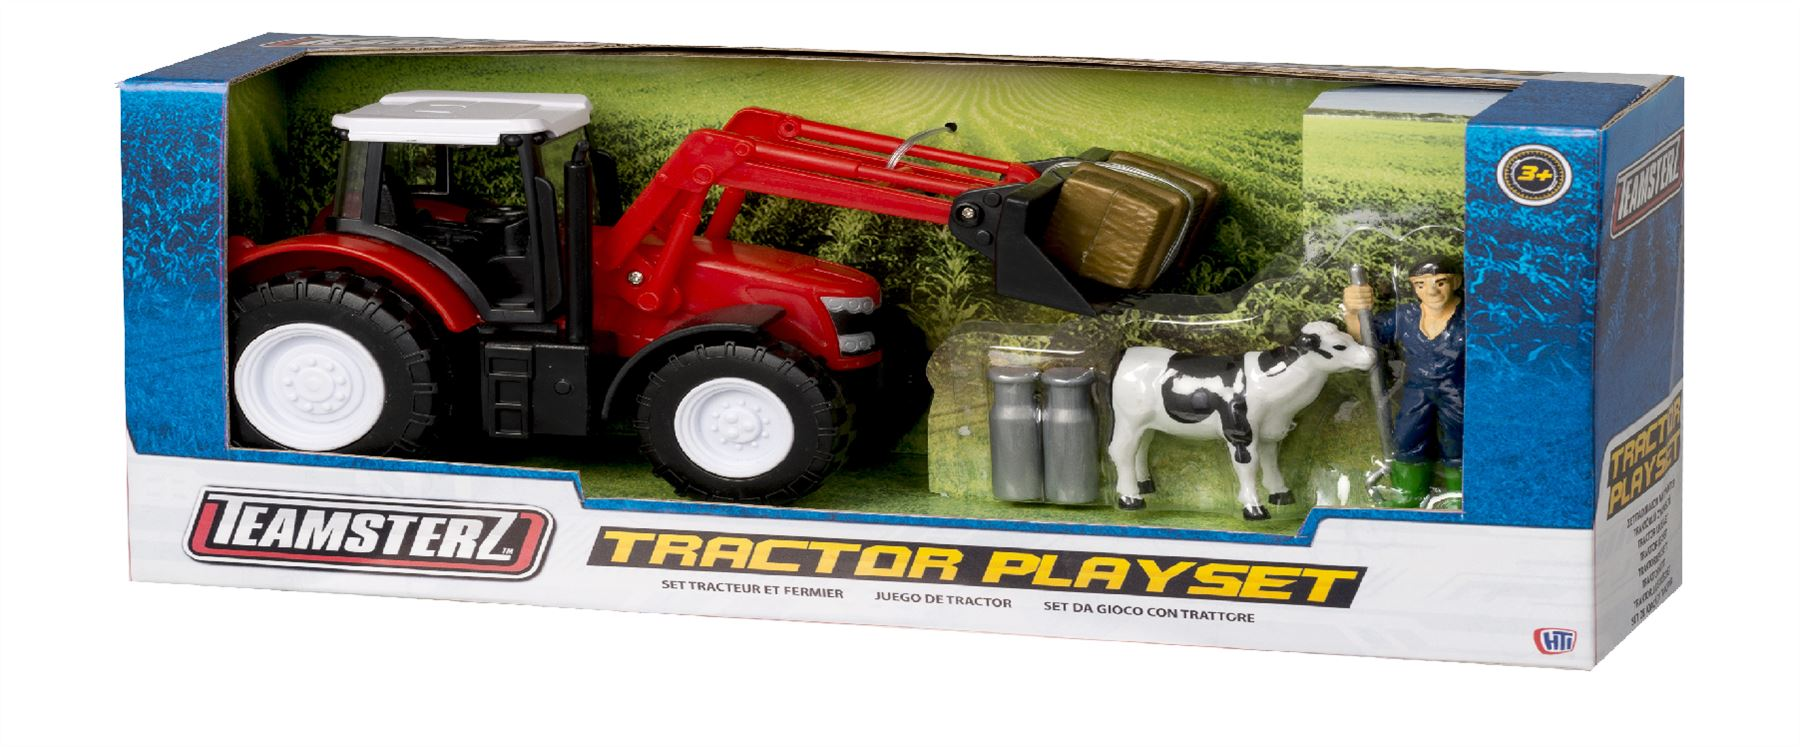 Teamsterz Red Tractor Playset #0526